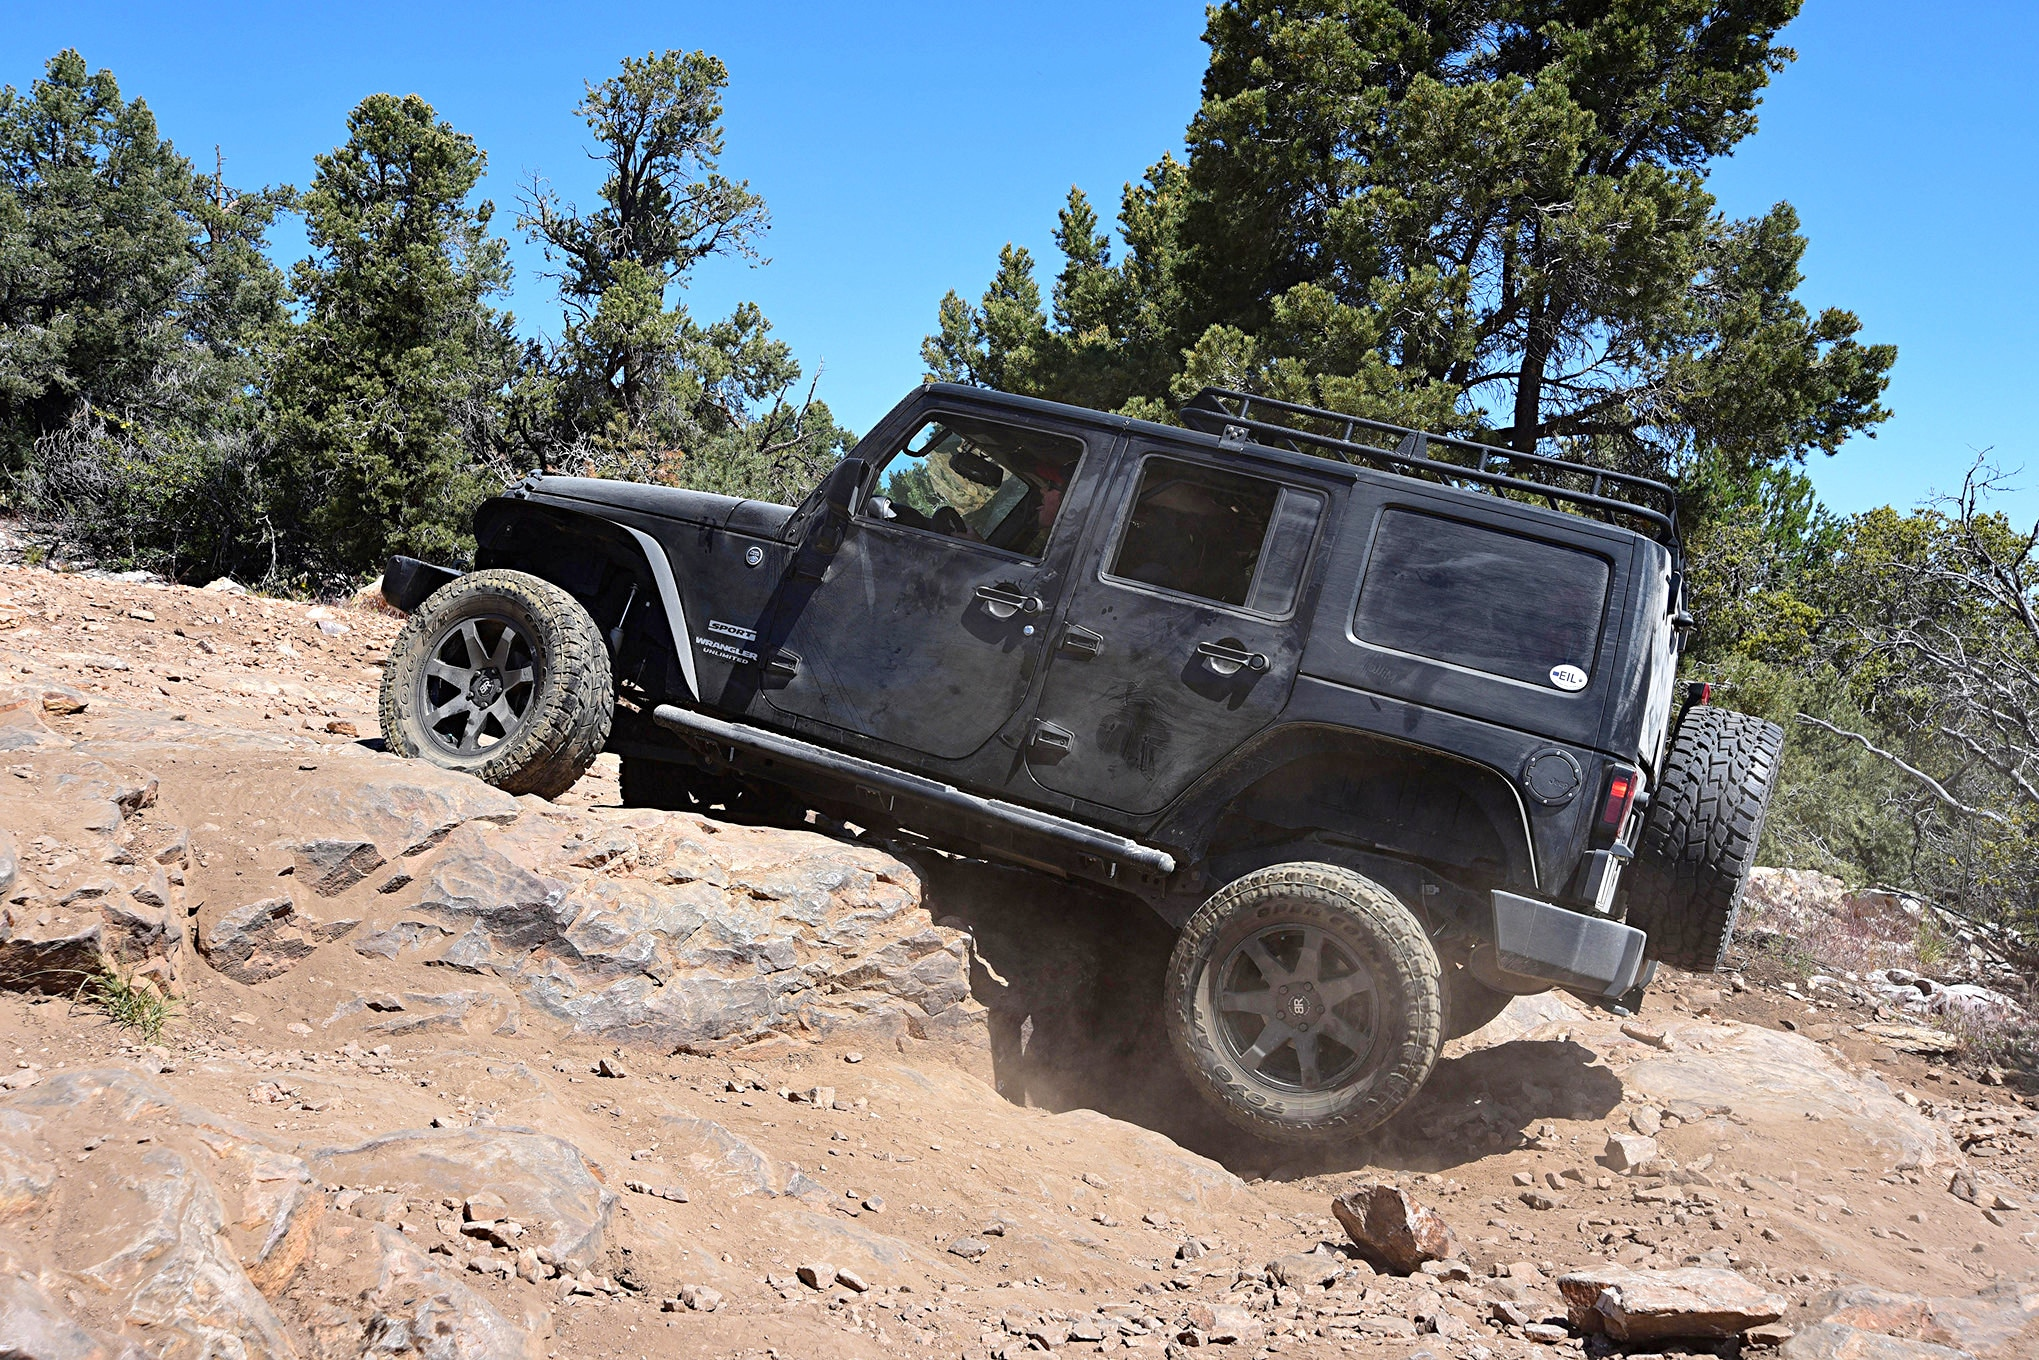 043 jeep event big bear forest fest 2019 inland empire